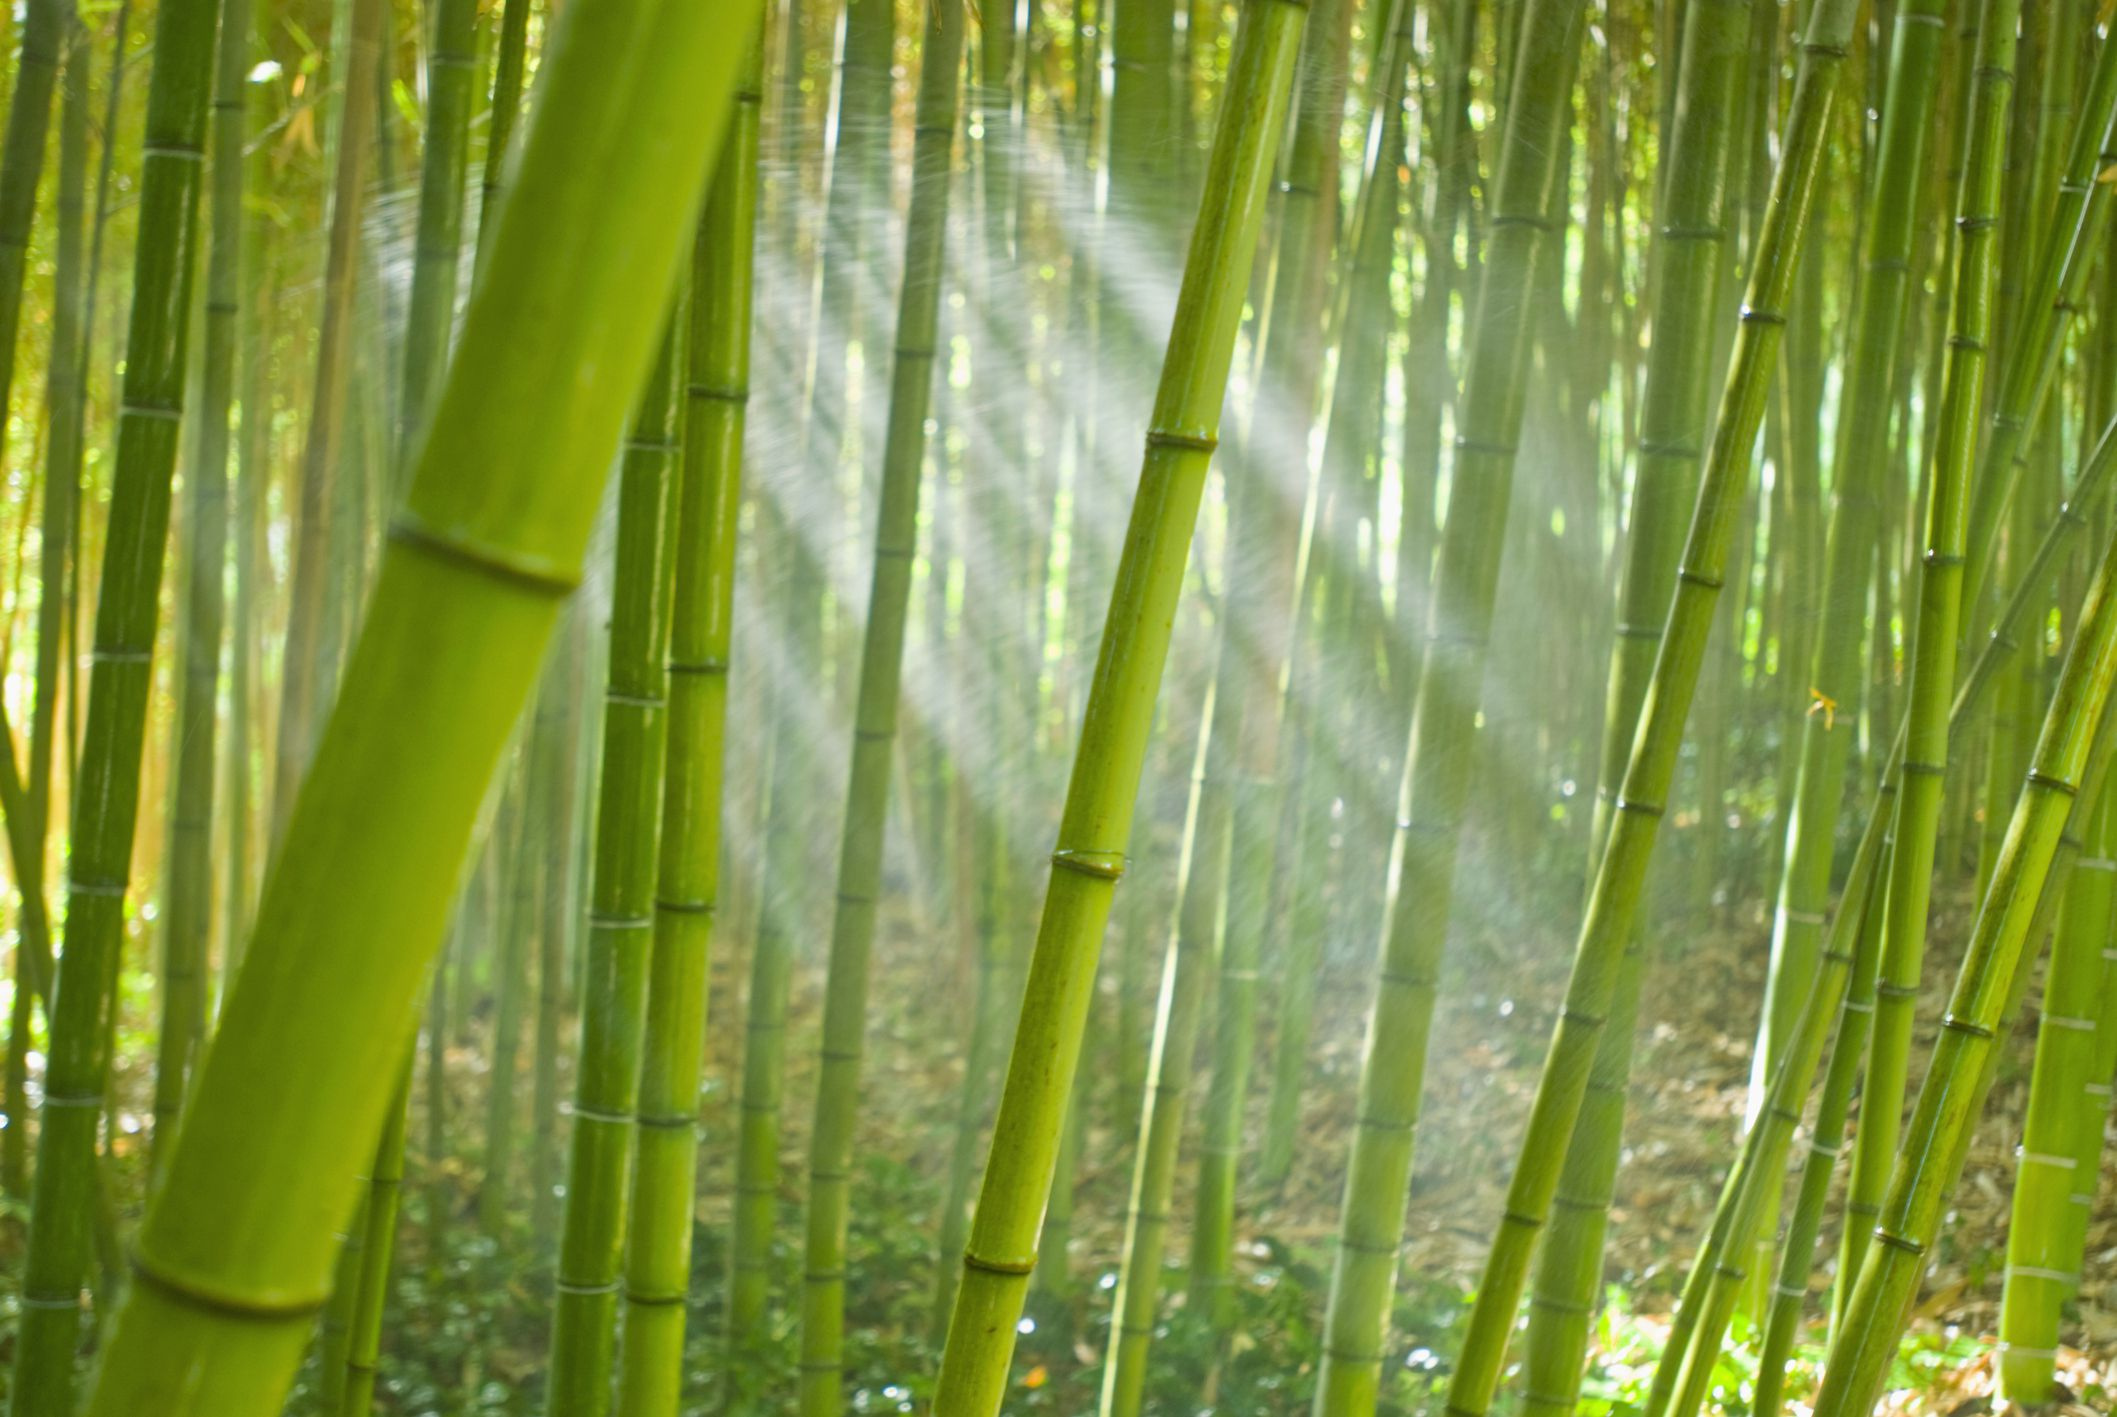 Bamboo Removal Eradication With Or Without Herbicides